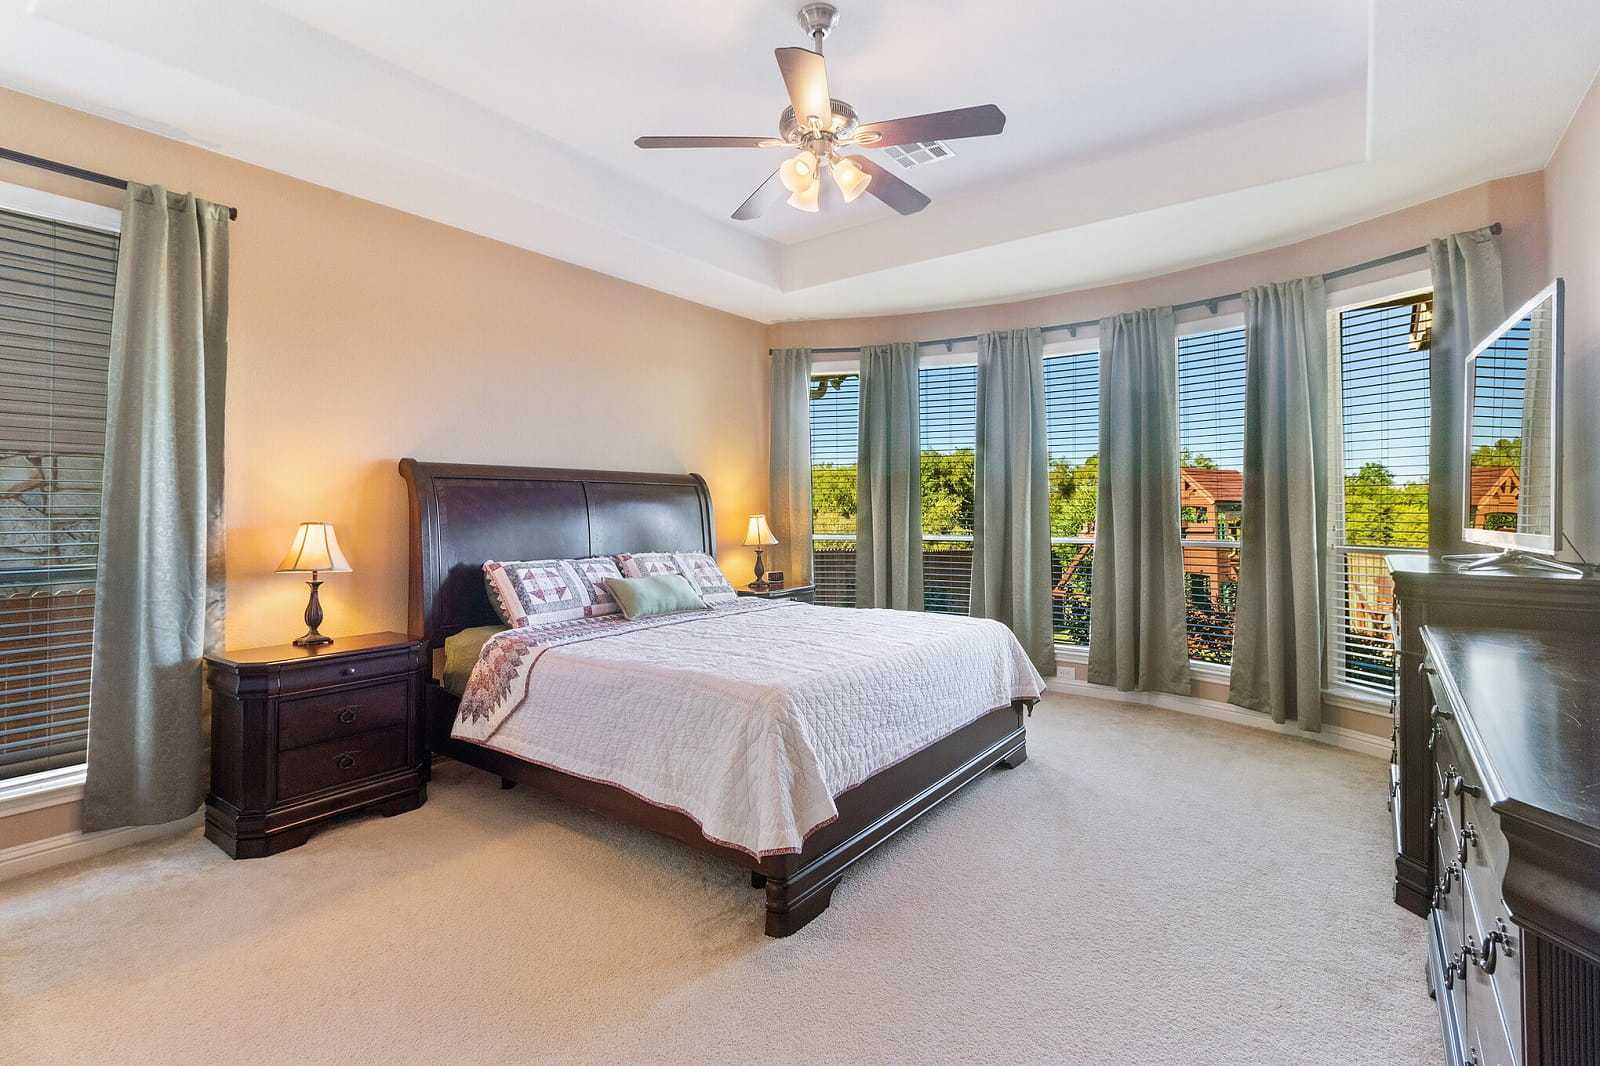 Real Estate Photography in Round Rock - TX - Bedroom View